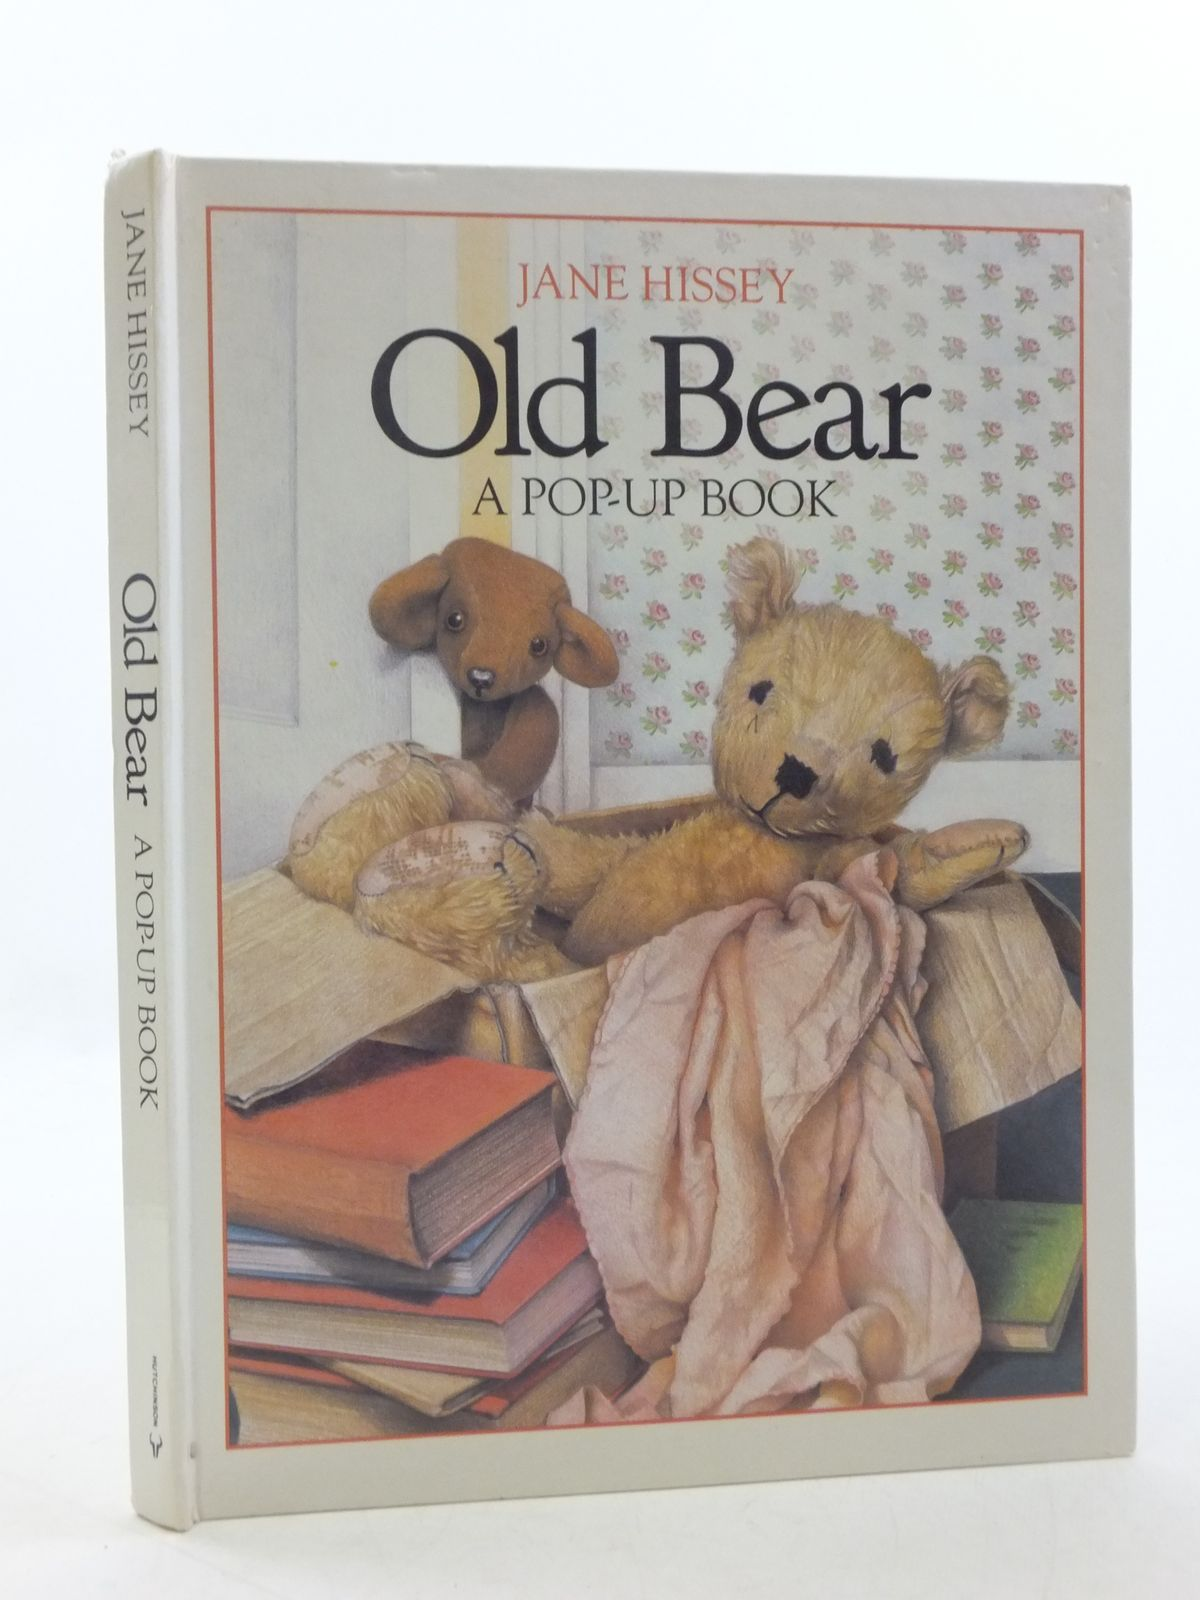 Photo of OLD BEAR A POP-UP BOOK